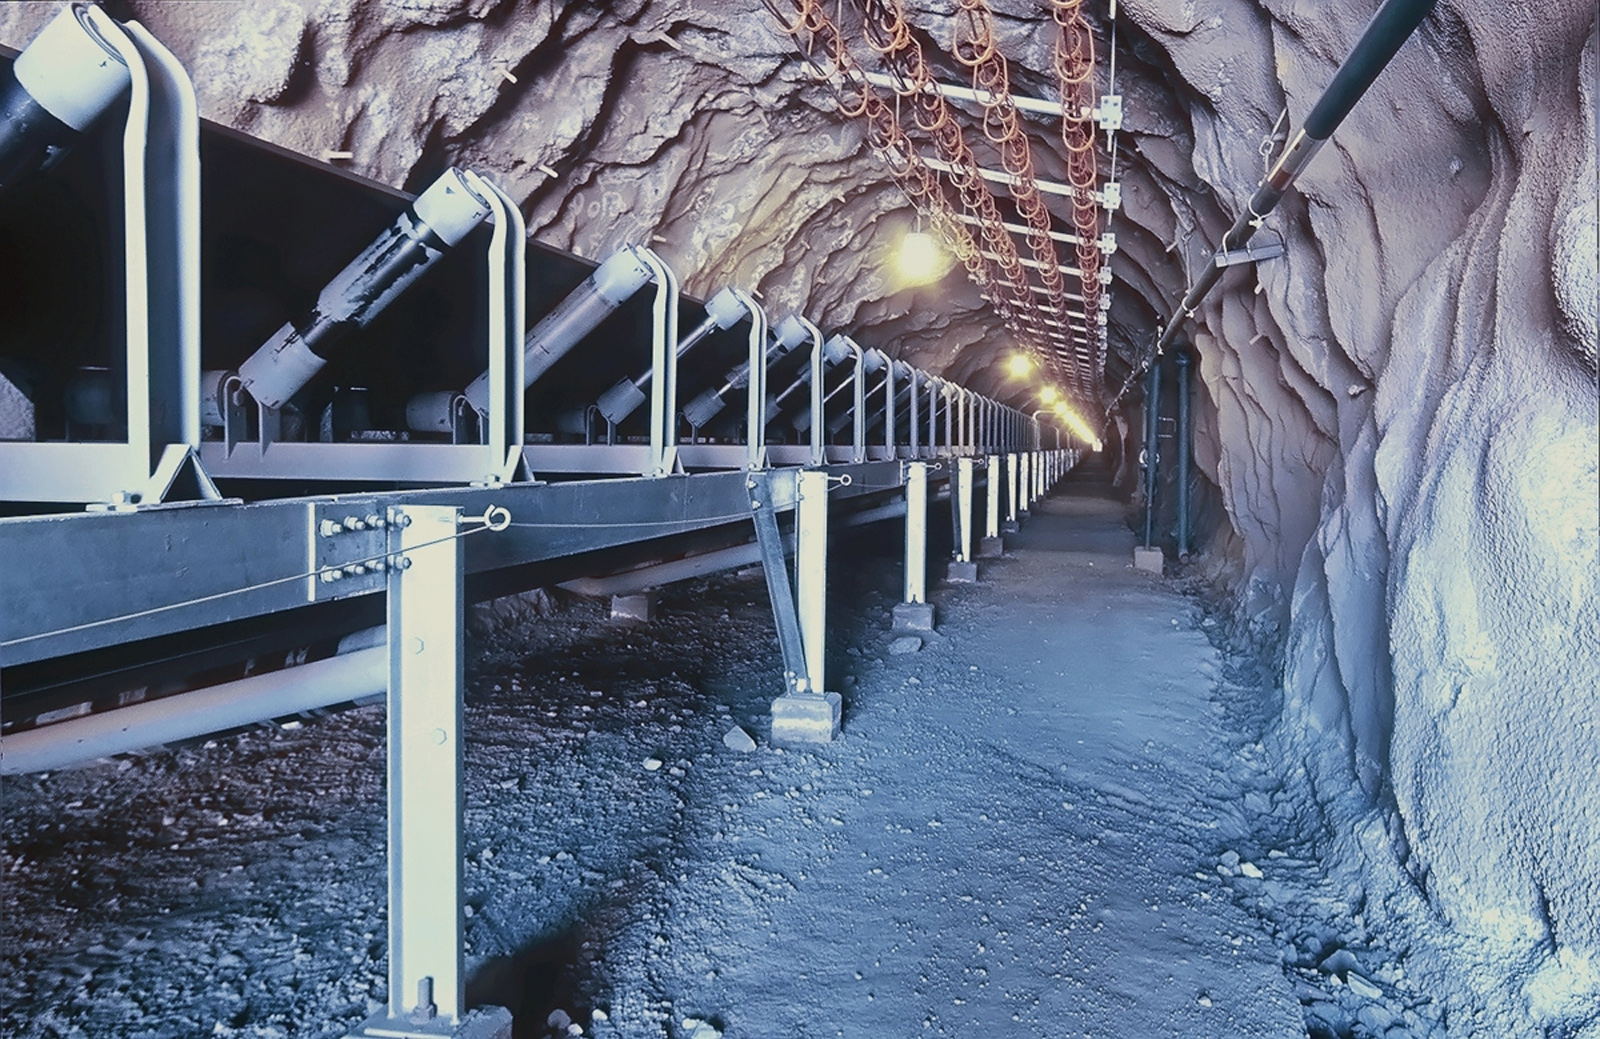 thyssenkrupp to deliver conveyor system for new underground copper mine in Mongolia